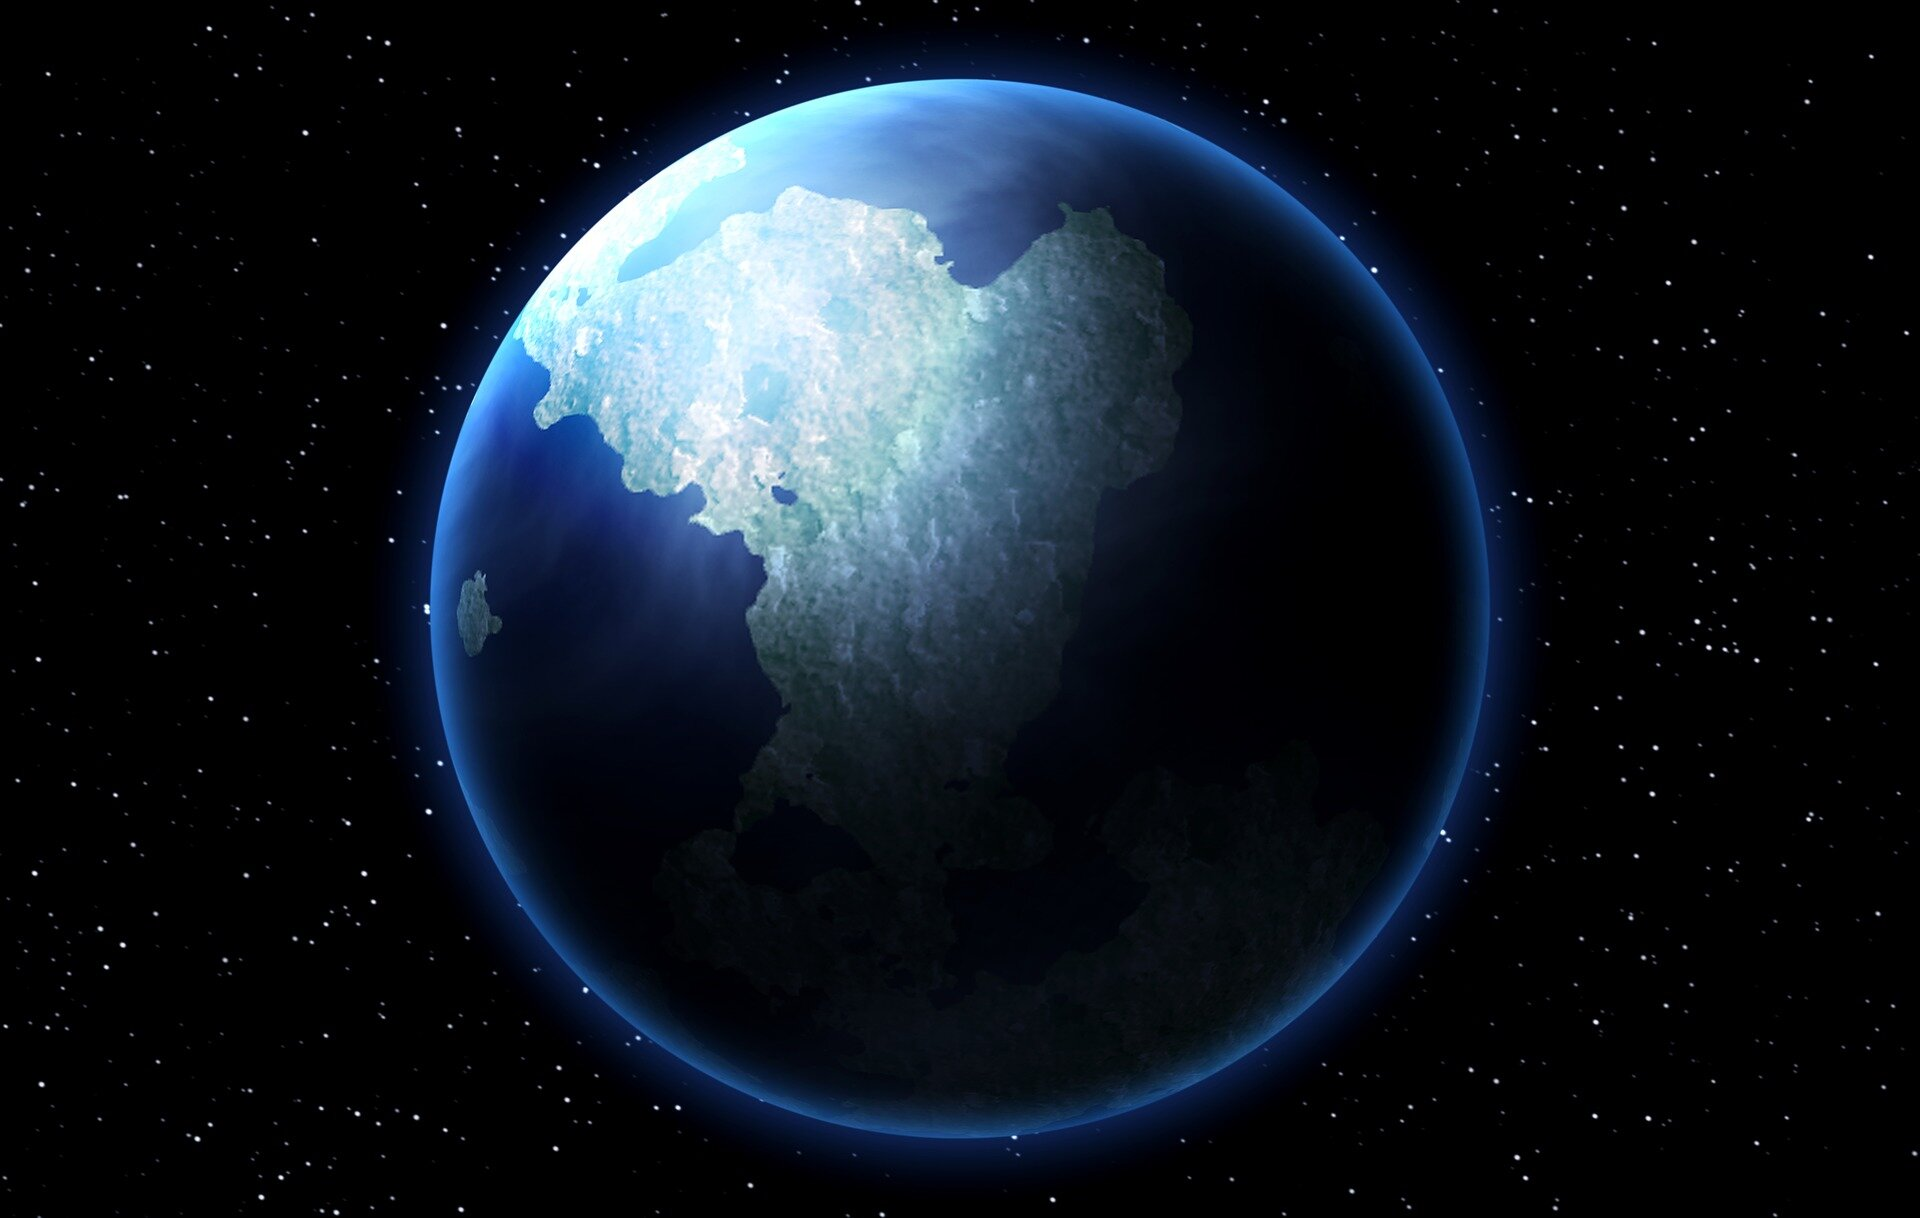 Scientists shed light on make-up of Earth's core